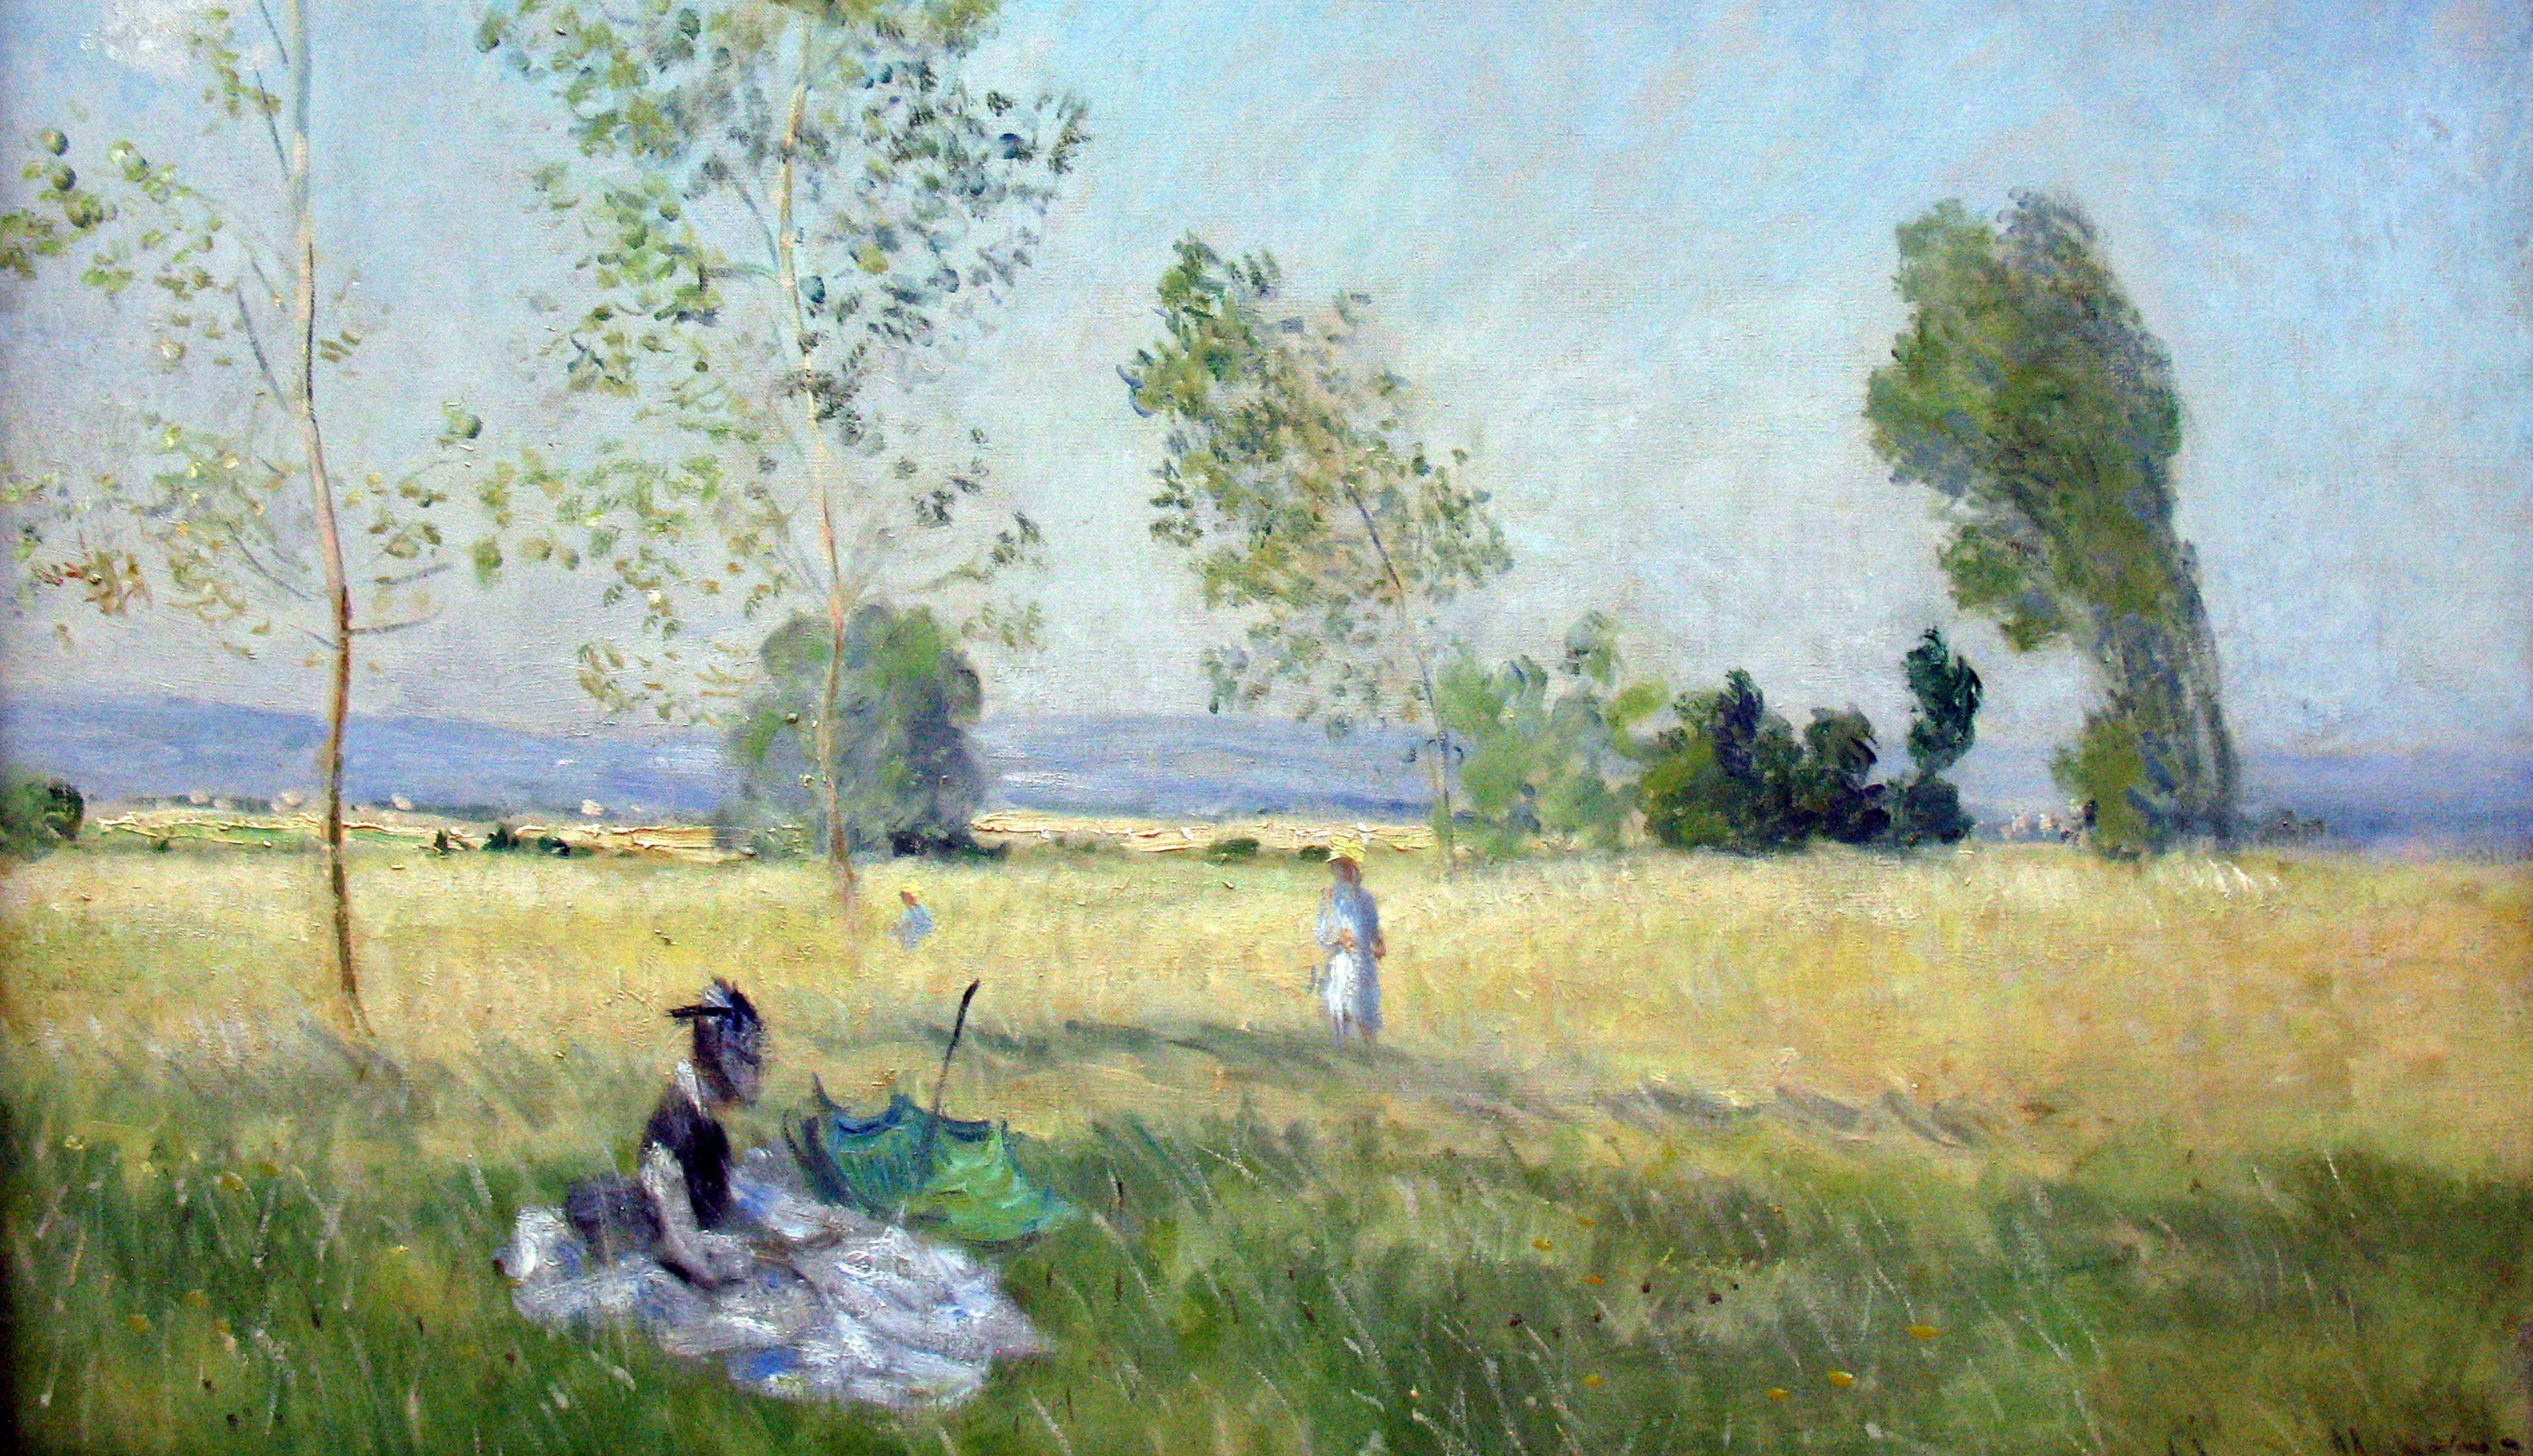 WEB2-PAINT-CLAUDE MONET-SUMMER-DOMAINE PUBLIC-1874_Monet_Sommer_anagoria.jpg